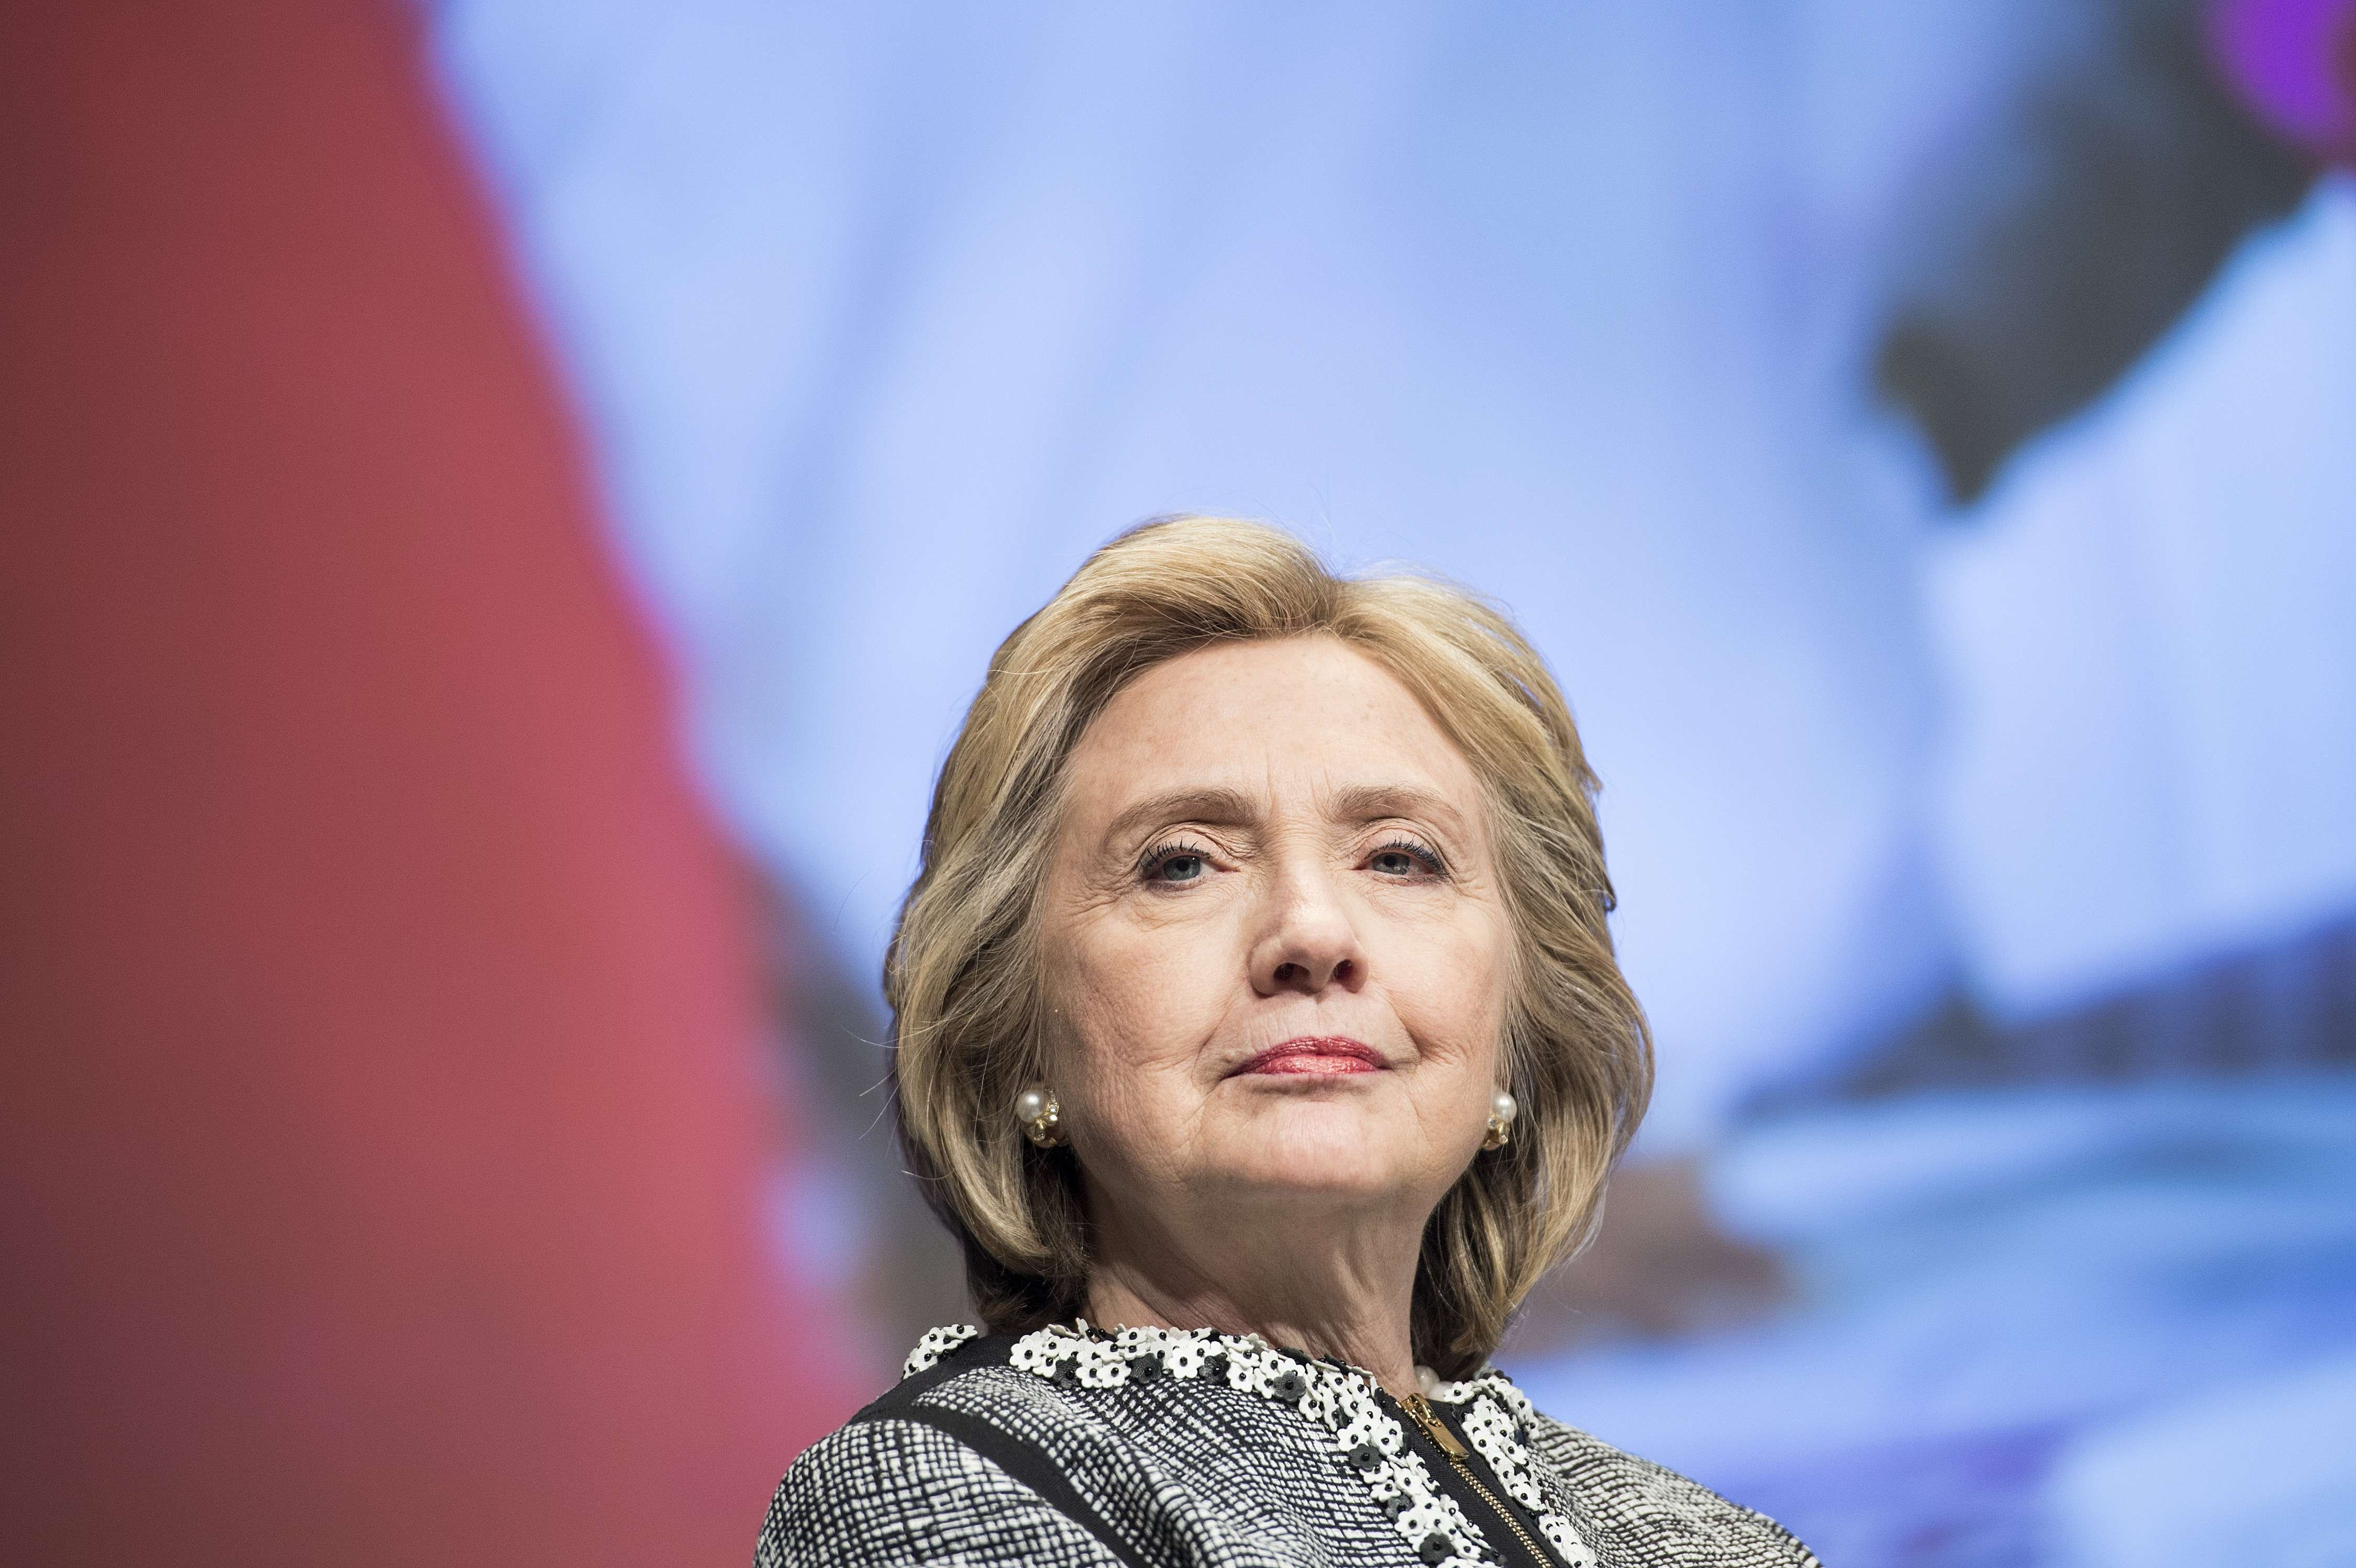 Former Secretary of State Hillary Clinton waits to speak at the World Bank on May 14, 2014 in Washington.